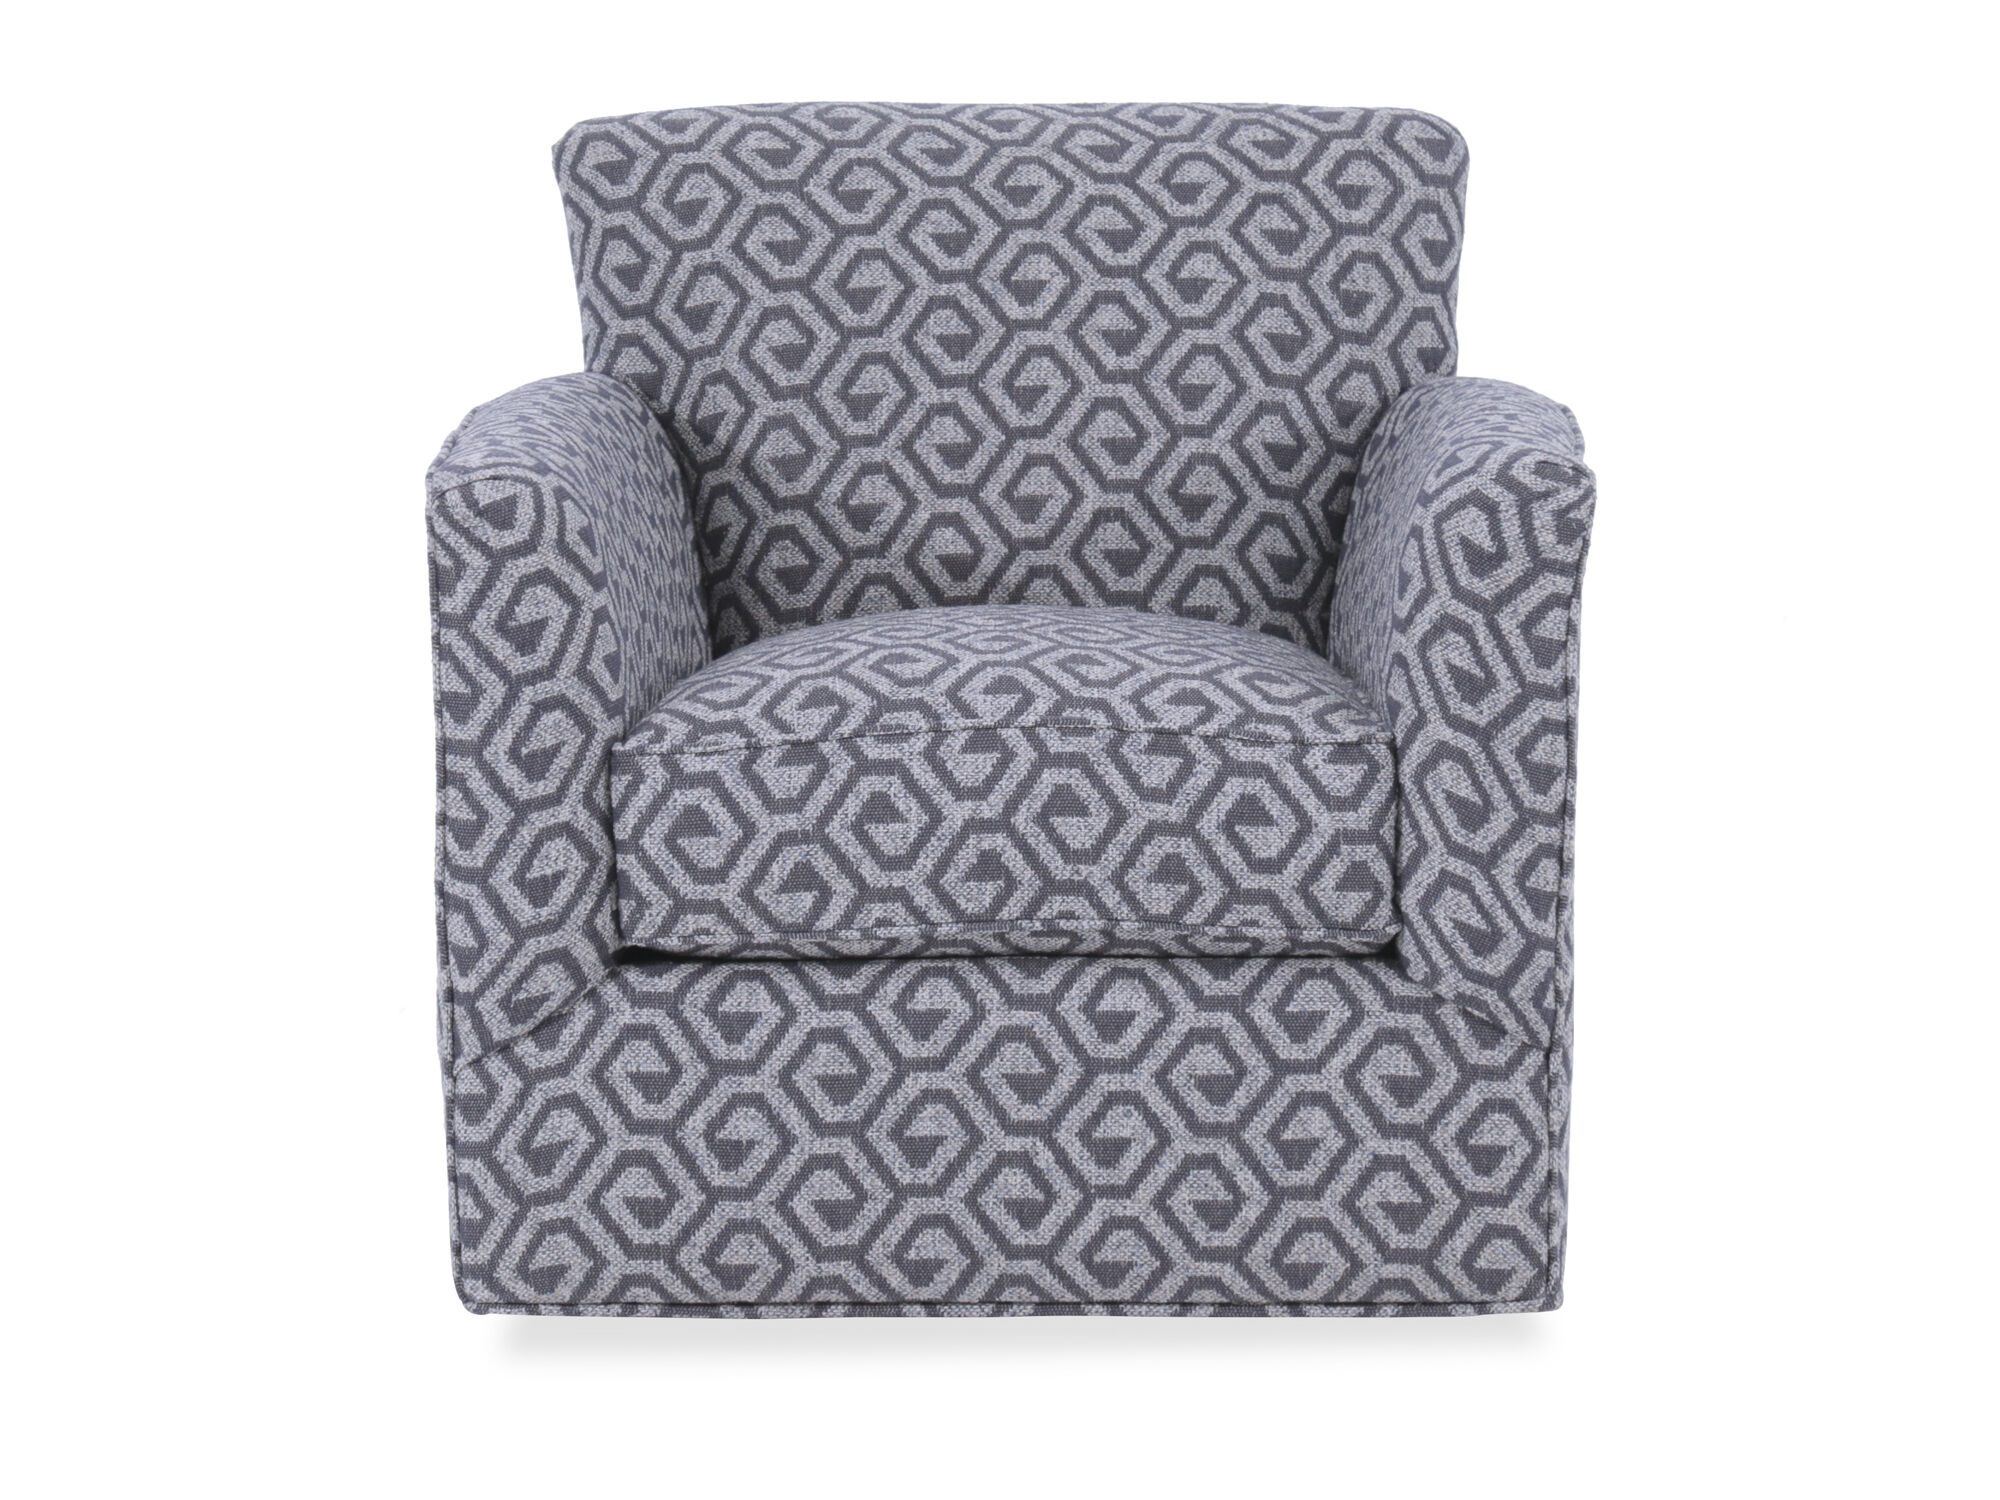 Images Geometric Patterned Contemporary 34u0026quot; Swivel Chair In Gray